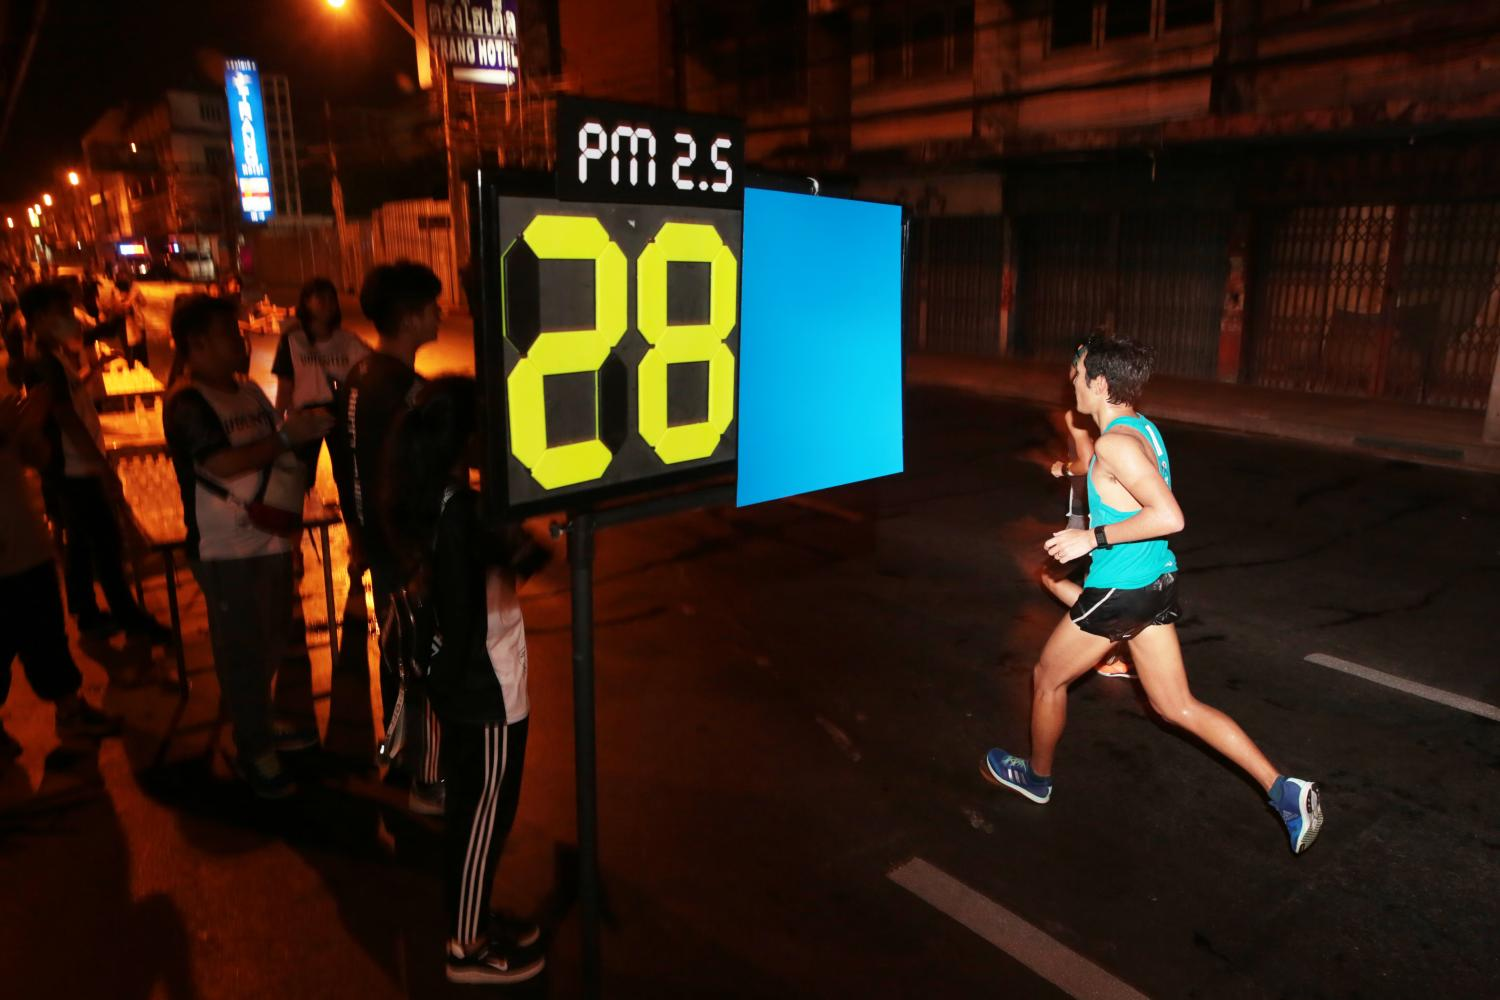 The 2020 edition of the Amazing Thailand Marathon in Bangkok risks being cancelled as the TAT closely monitors levels of PM2.5 dust in the capital. Chanat Katanyu